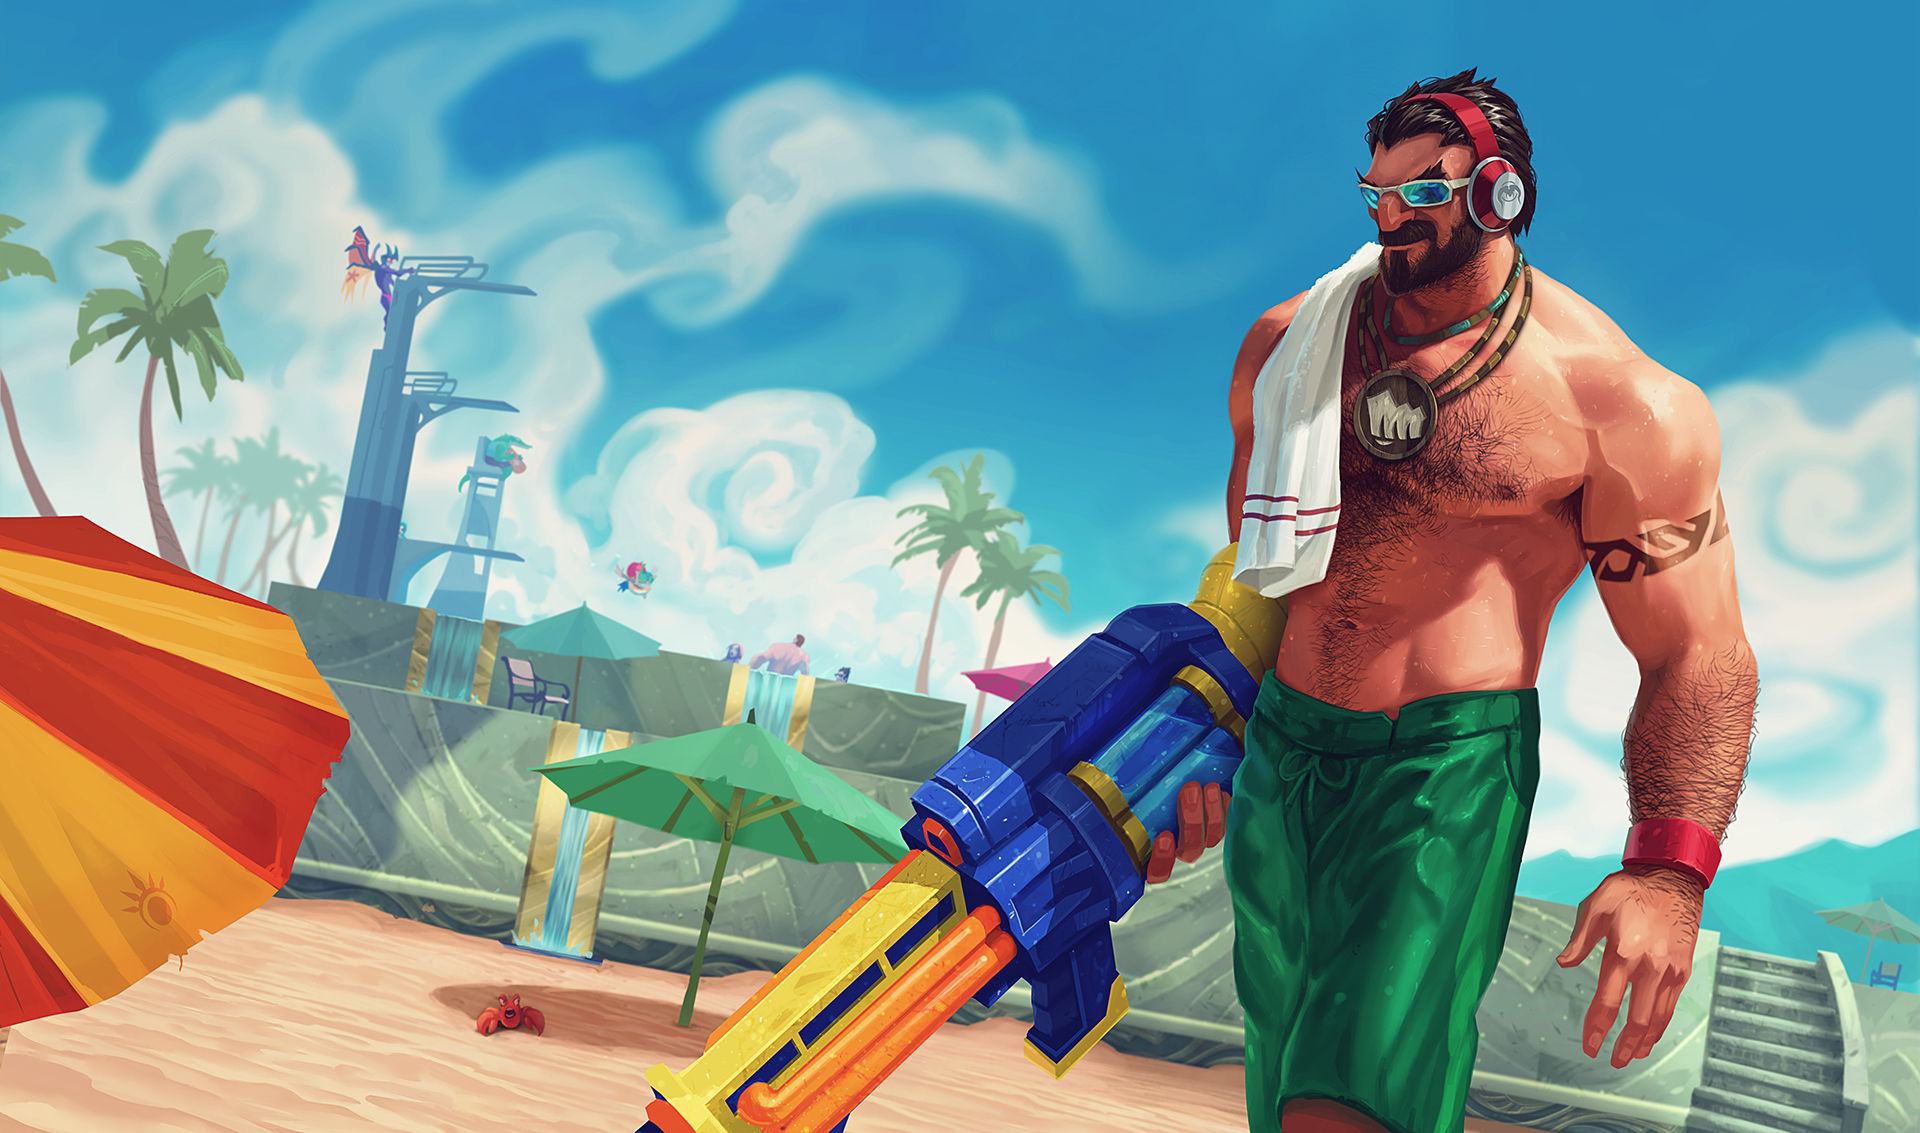 Pool Party Graves wallpaper